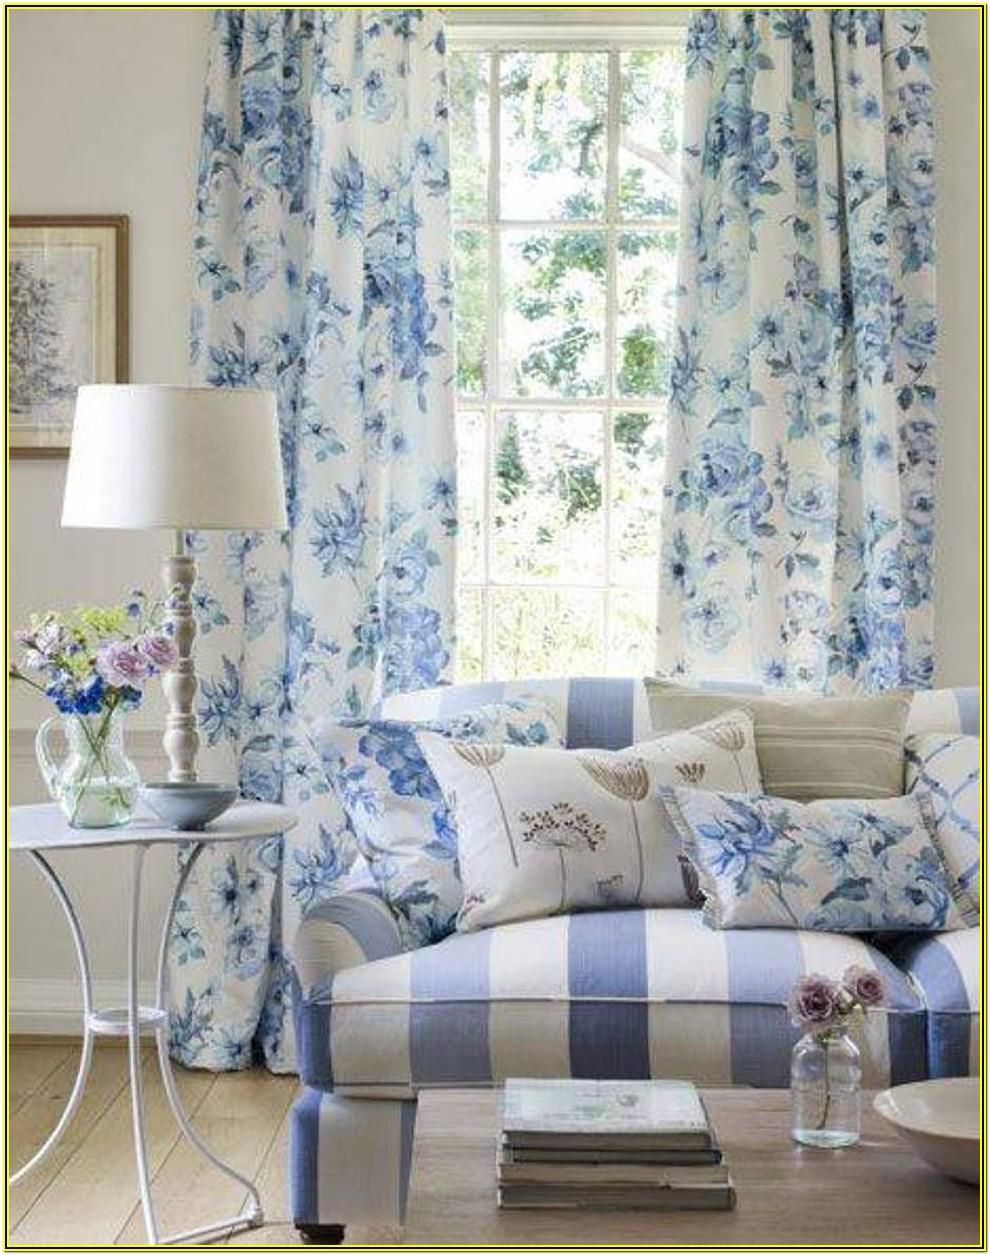 Curtain Ideas For French Country Living Room